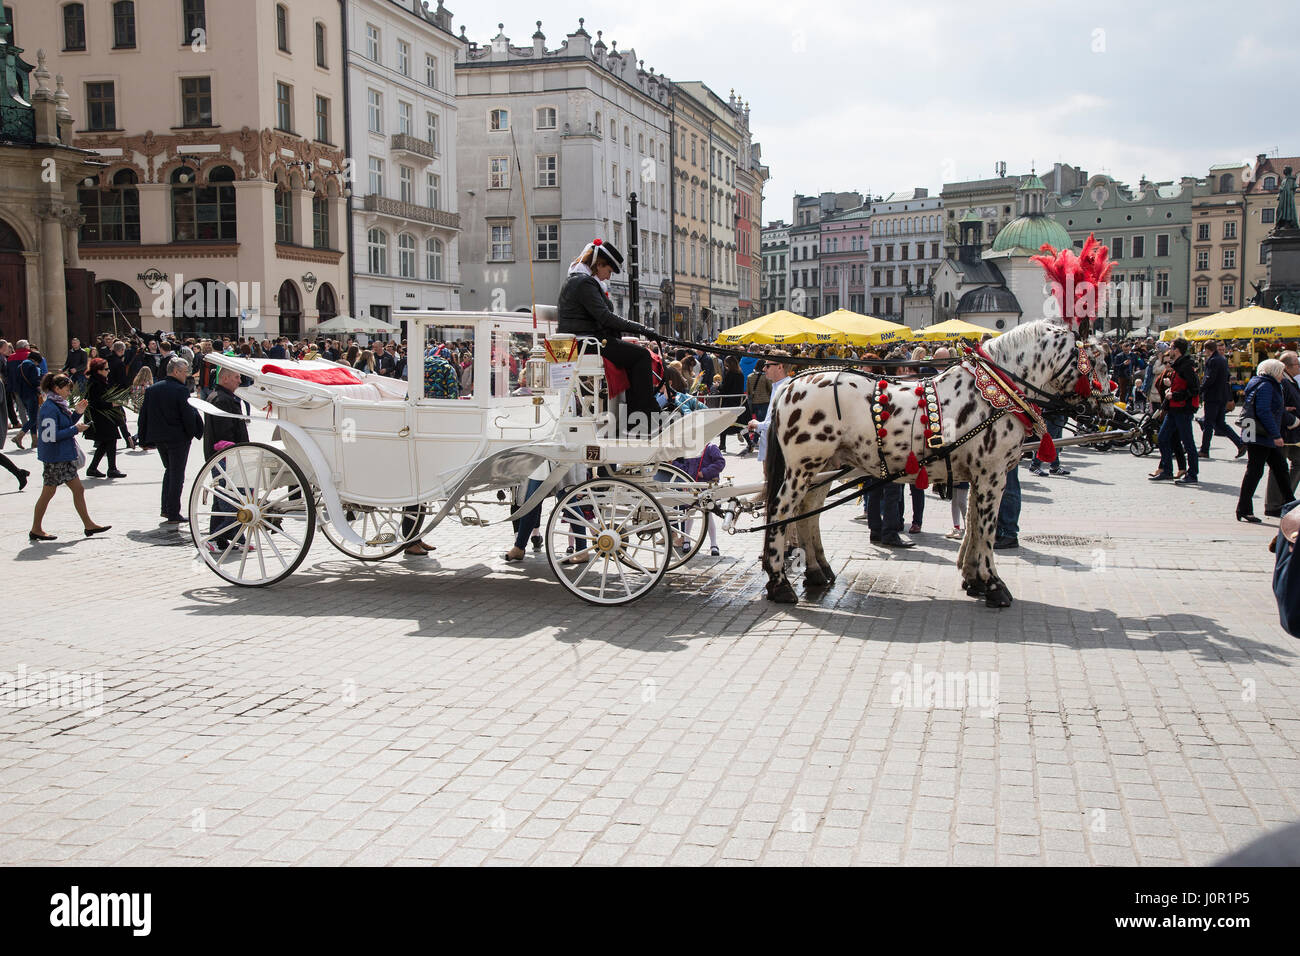 Horse and carriage tours in the main square in Krakow old town - Stock Image